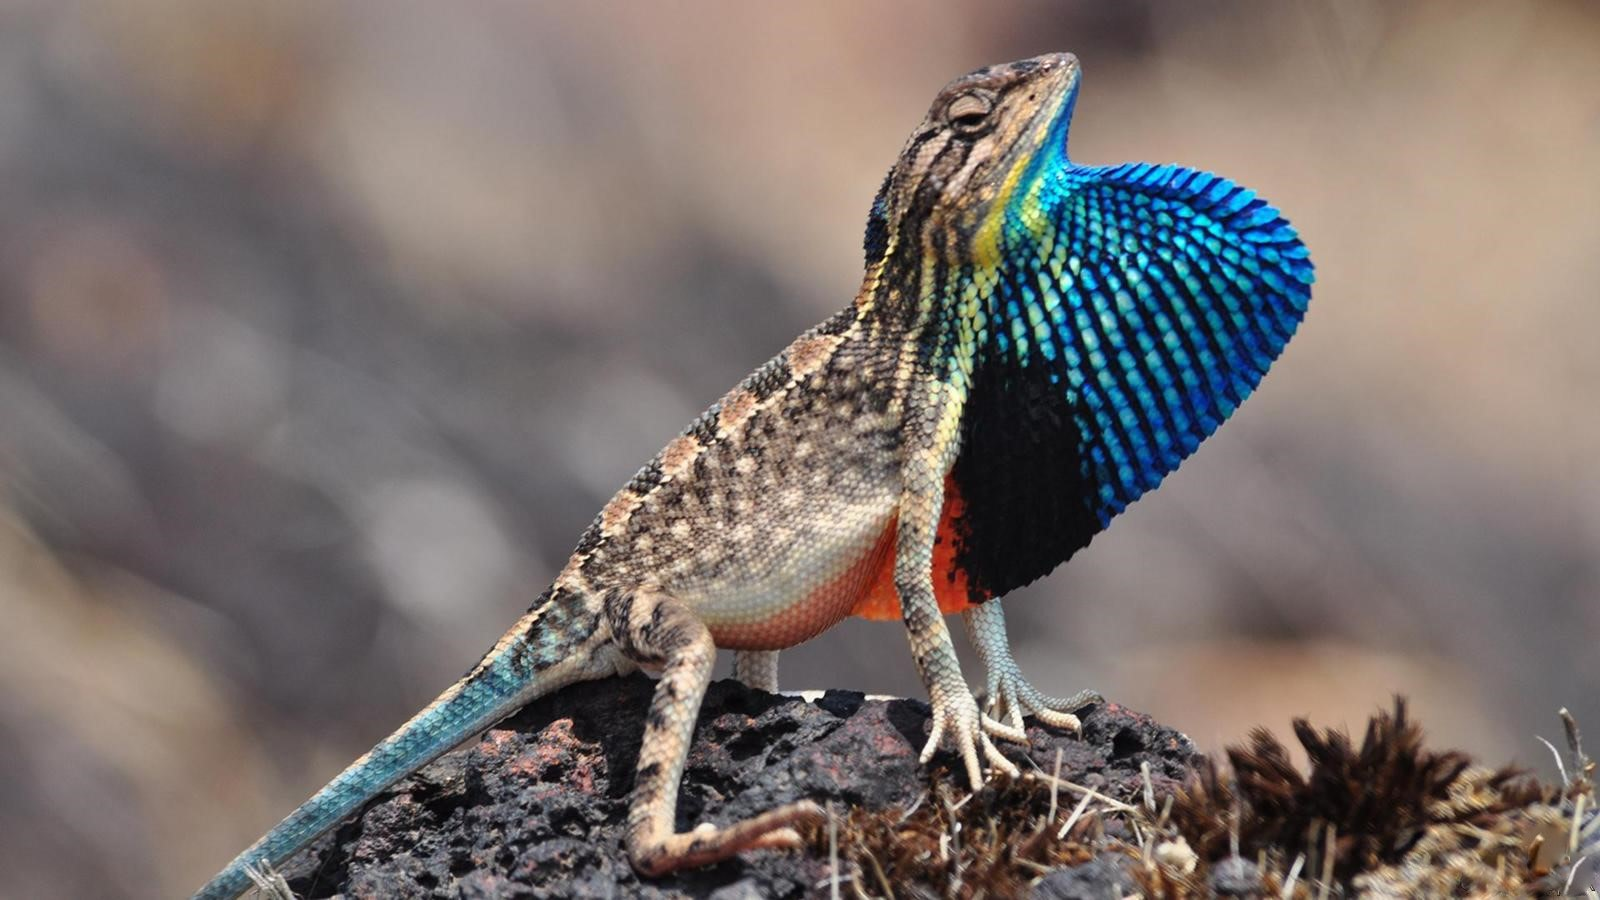 The recently discovered superb fan-throated lizard sports one of the largest dewlaps among all fan-throated lizards, seen here in all its iridescent glory.